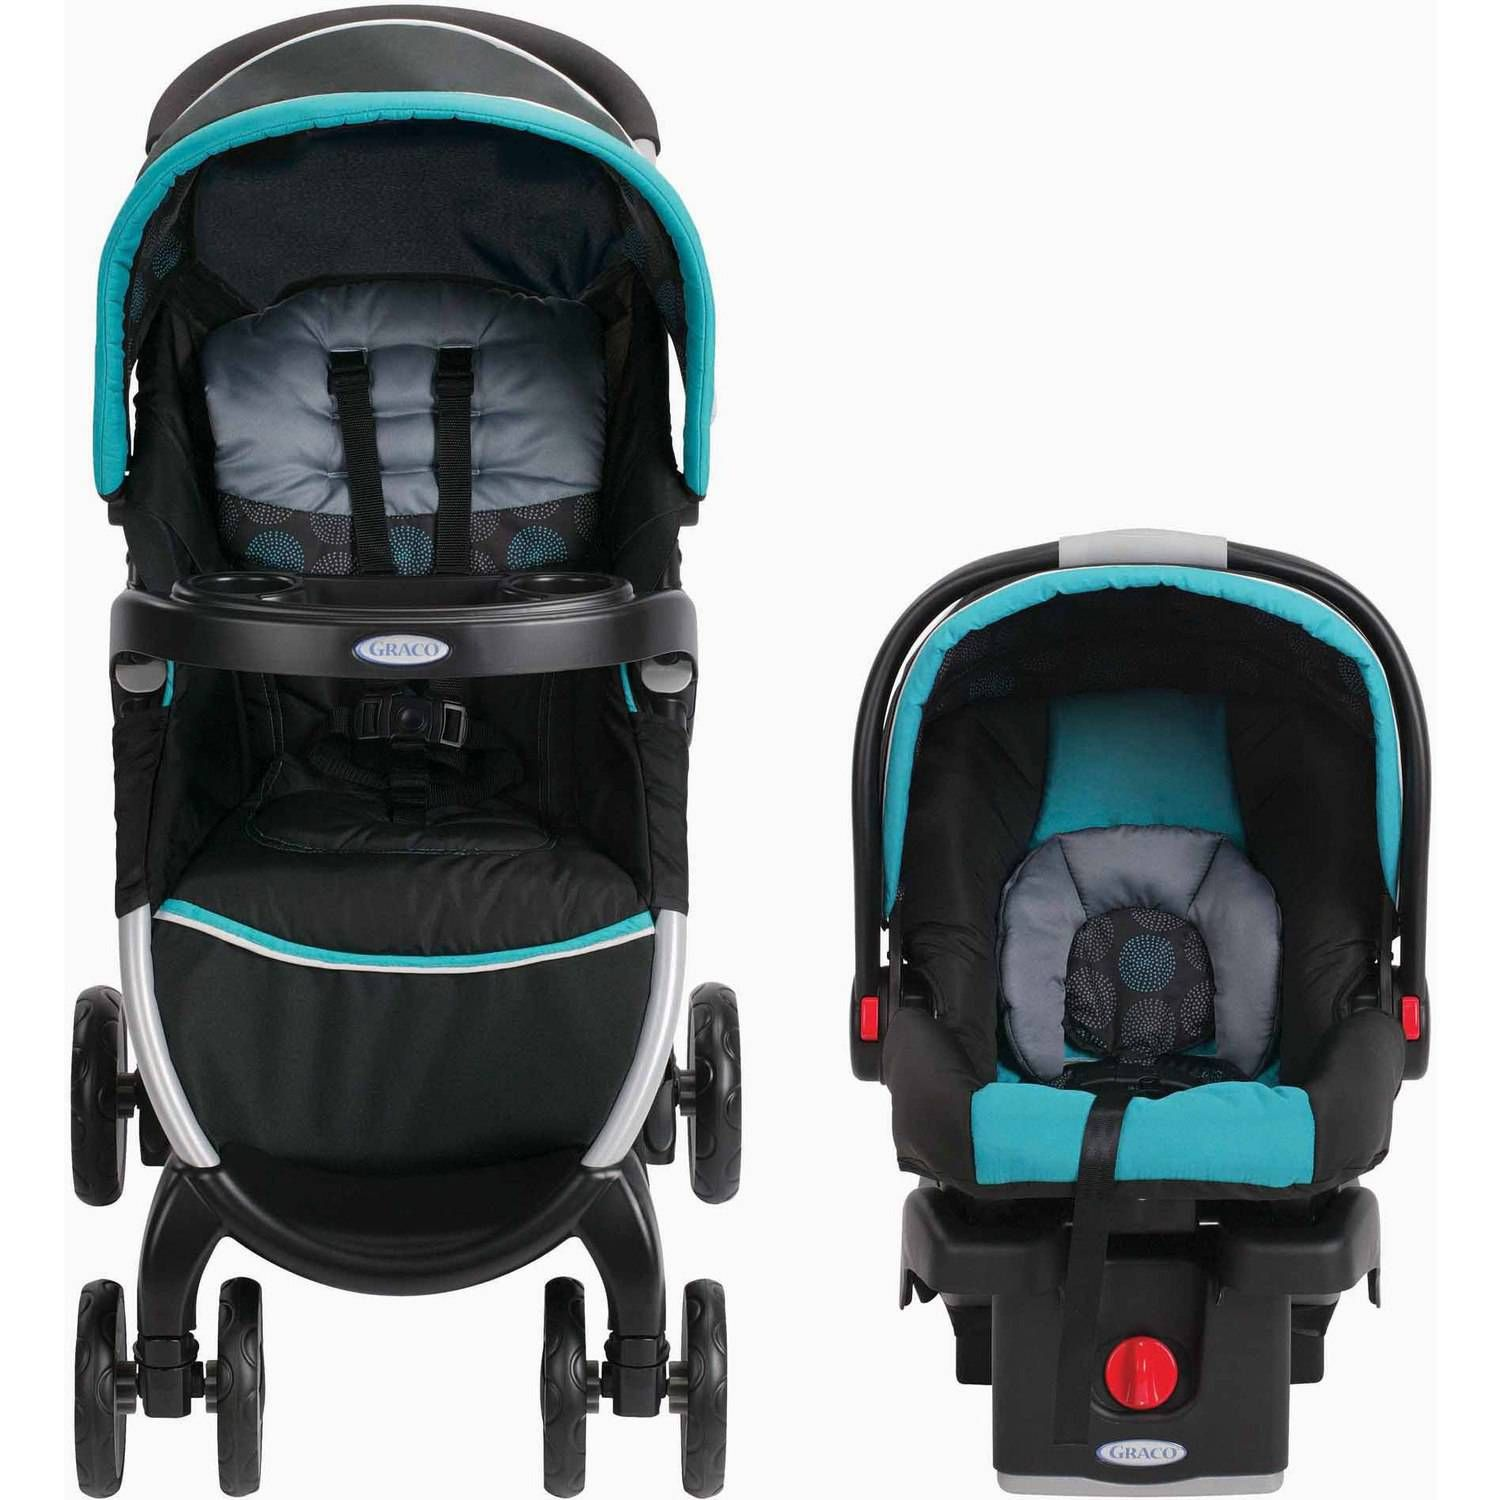 31++ Graco stroller and car seat instructions ideas